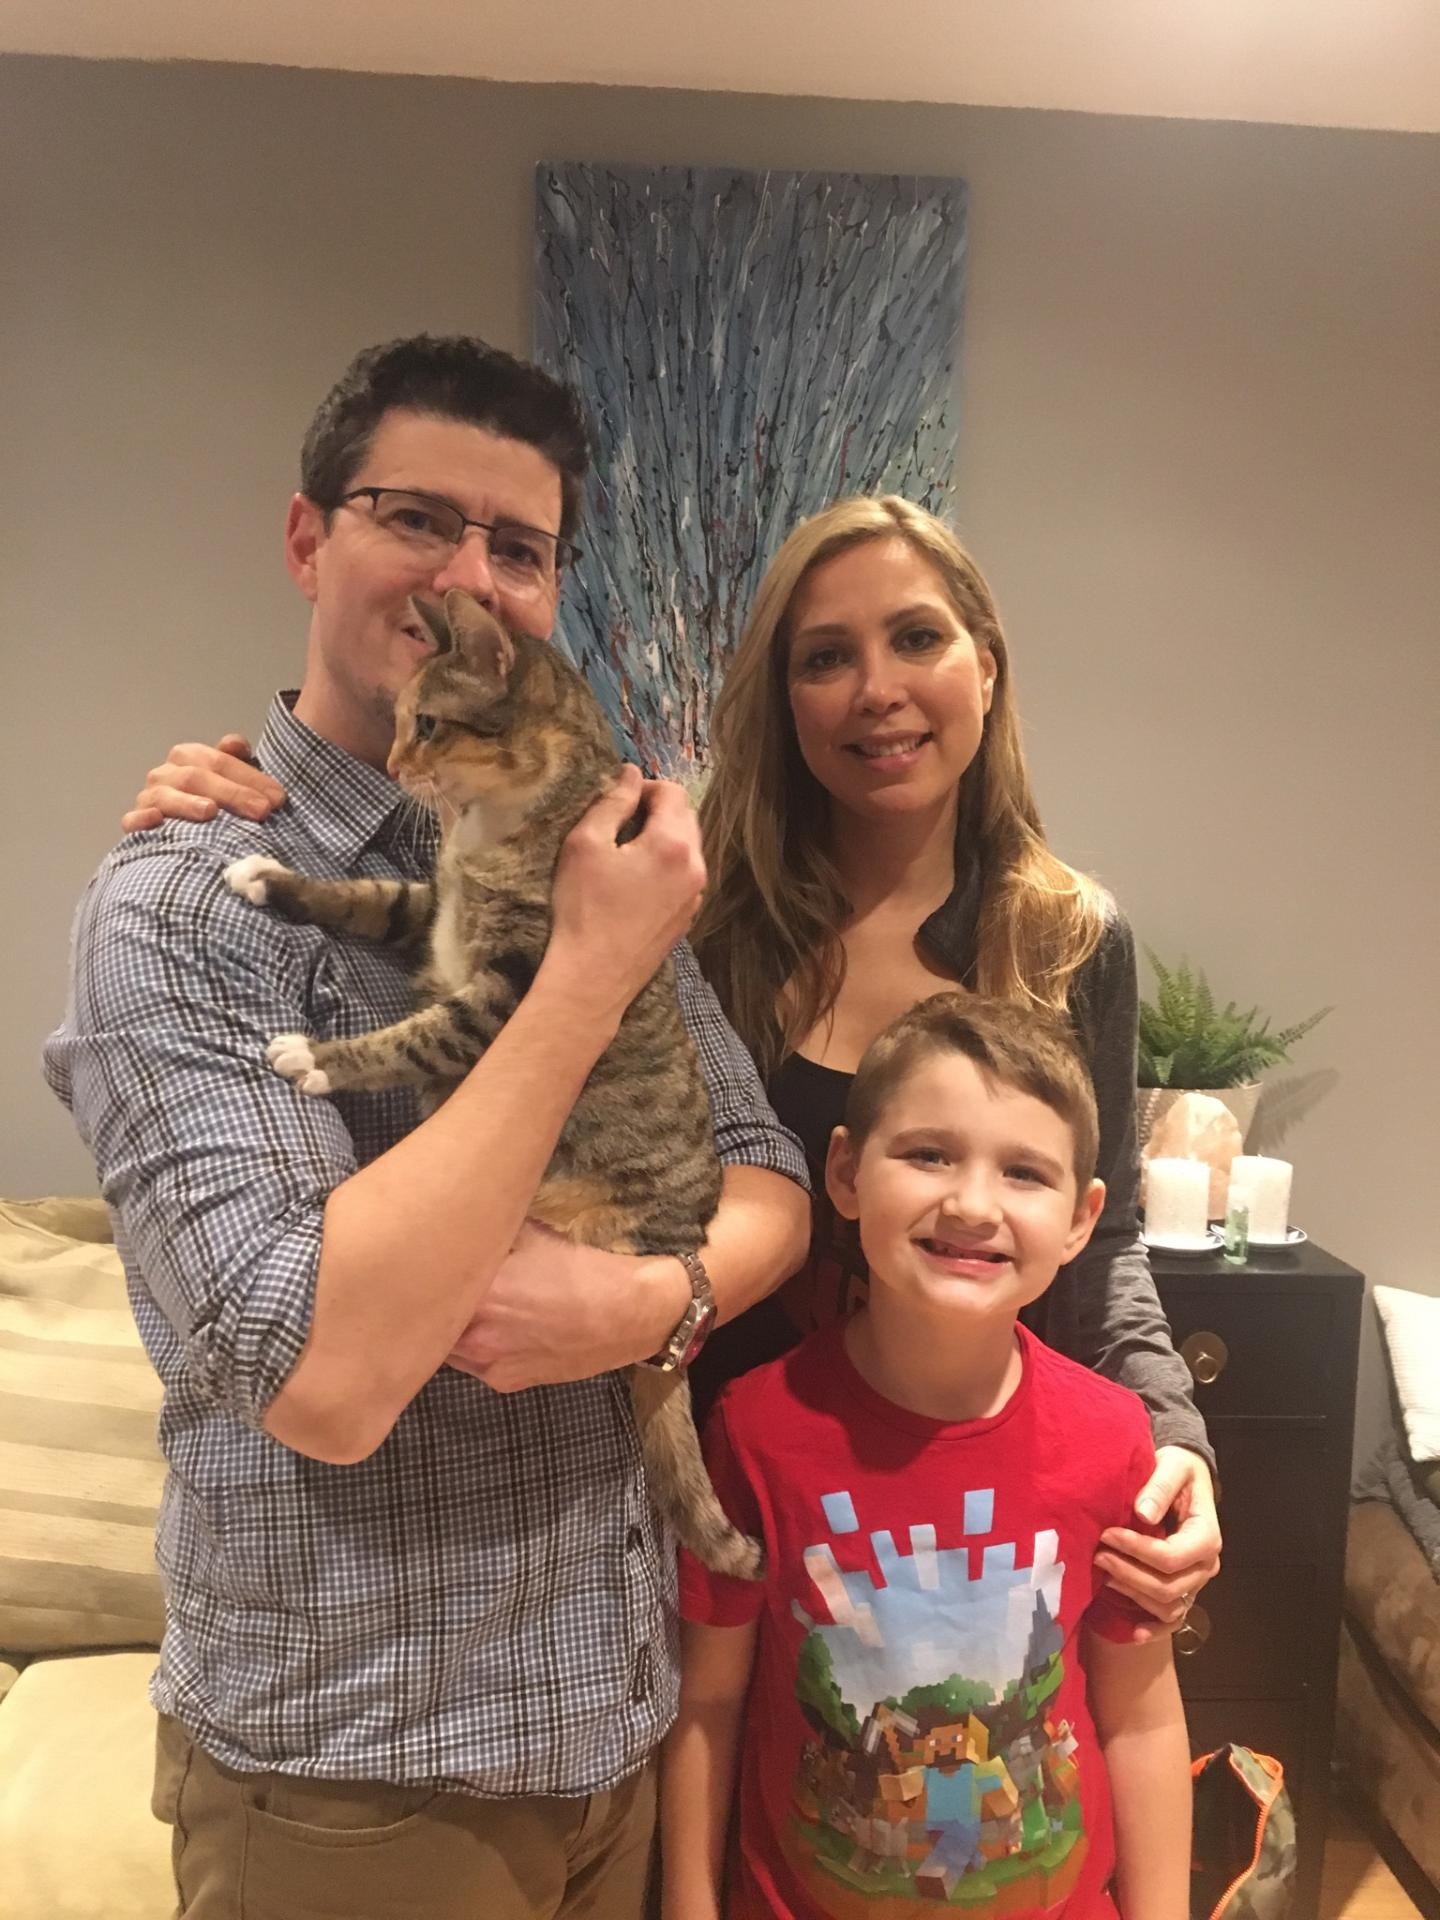 Socks has a new family!